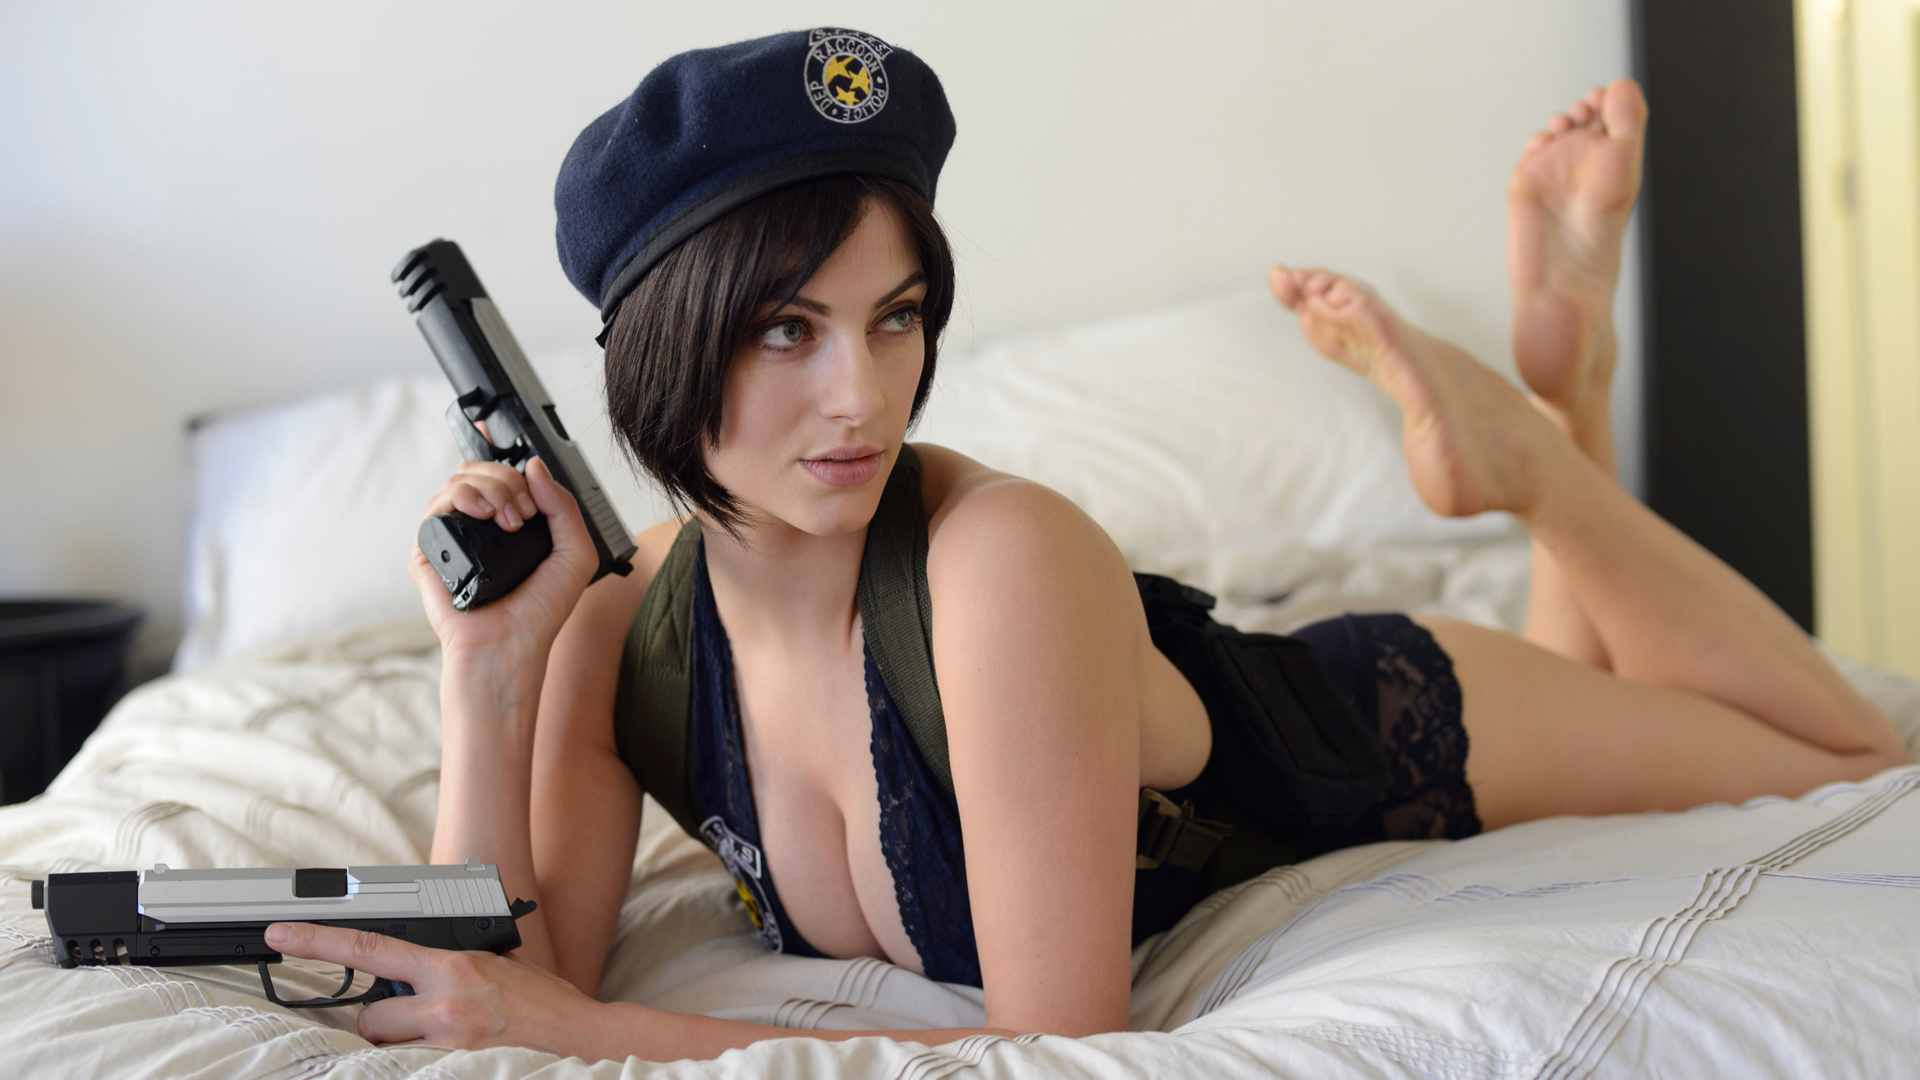 Jill Valentine In Bed With Guns Ps4wallpapers Com